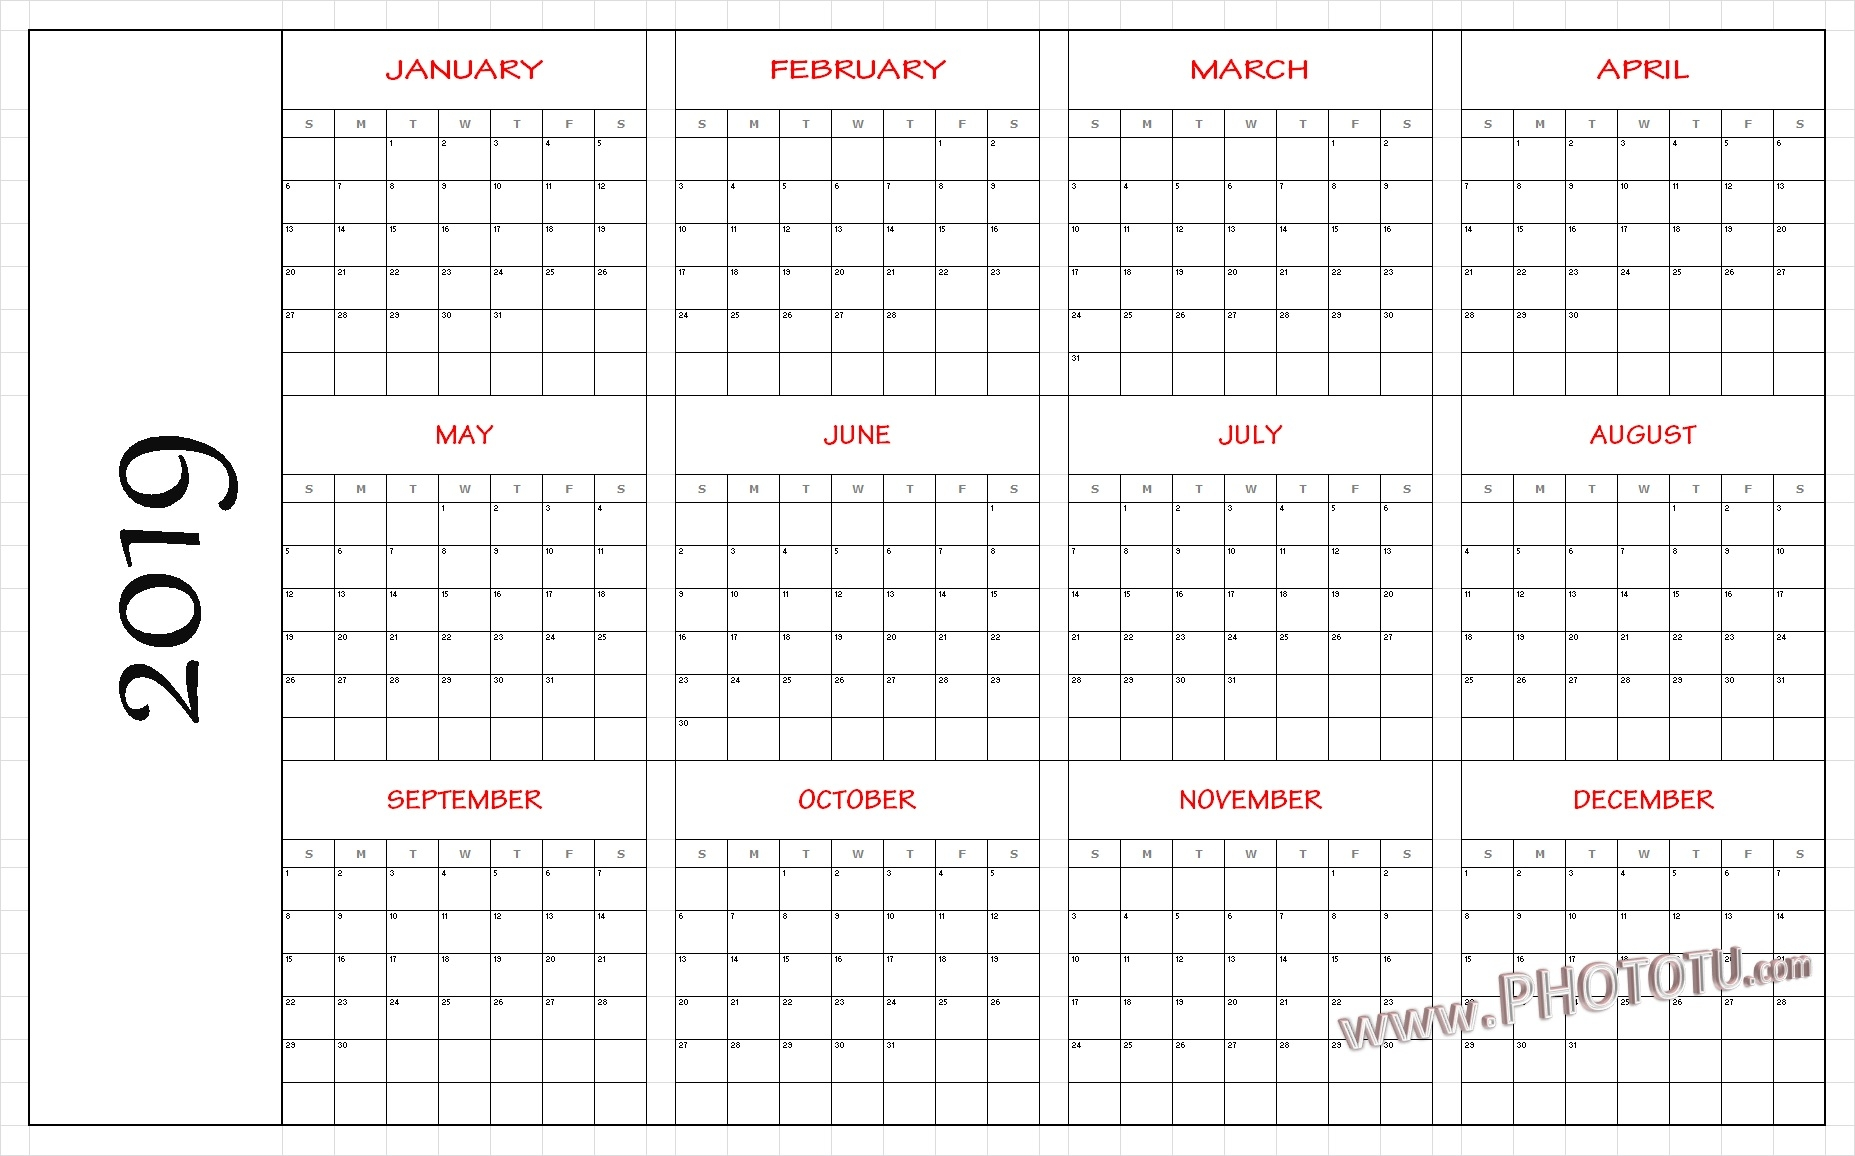 download template yearly calendar 2019 with uae dubai holidays::Monthly 2019 Holidays Calendar Templates